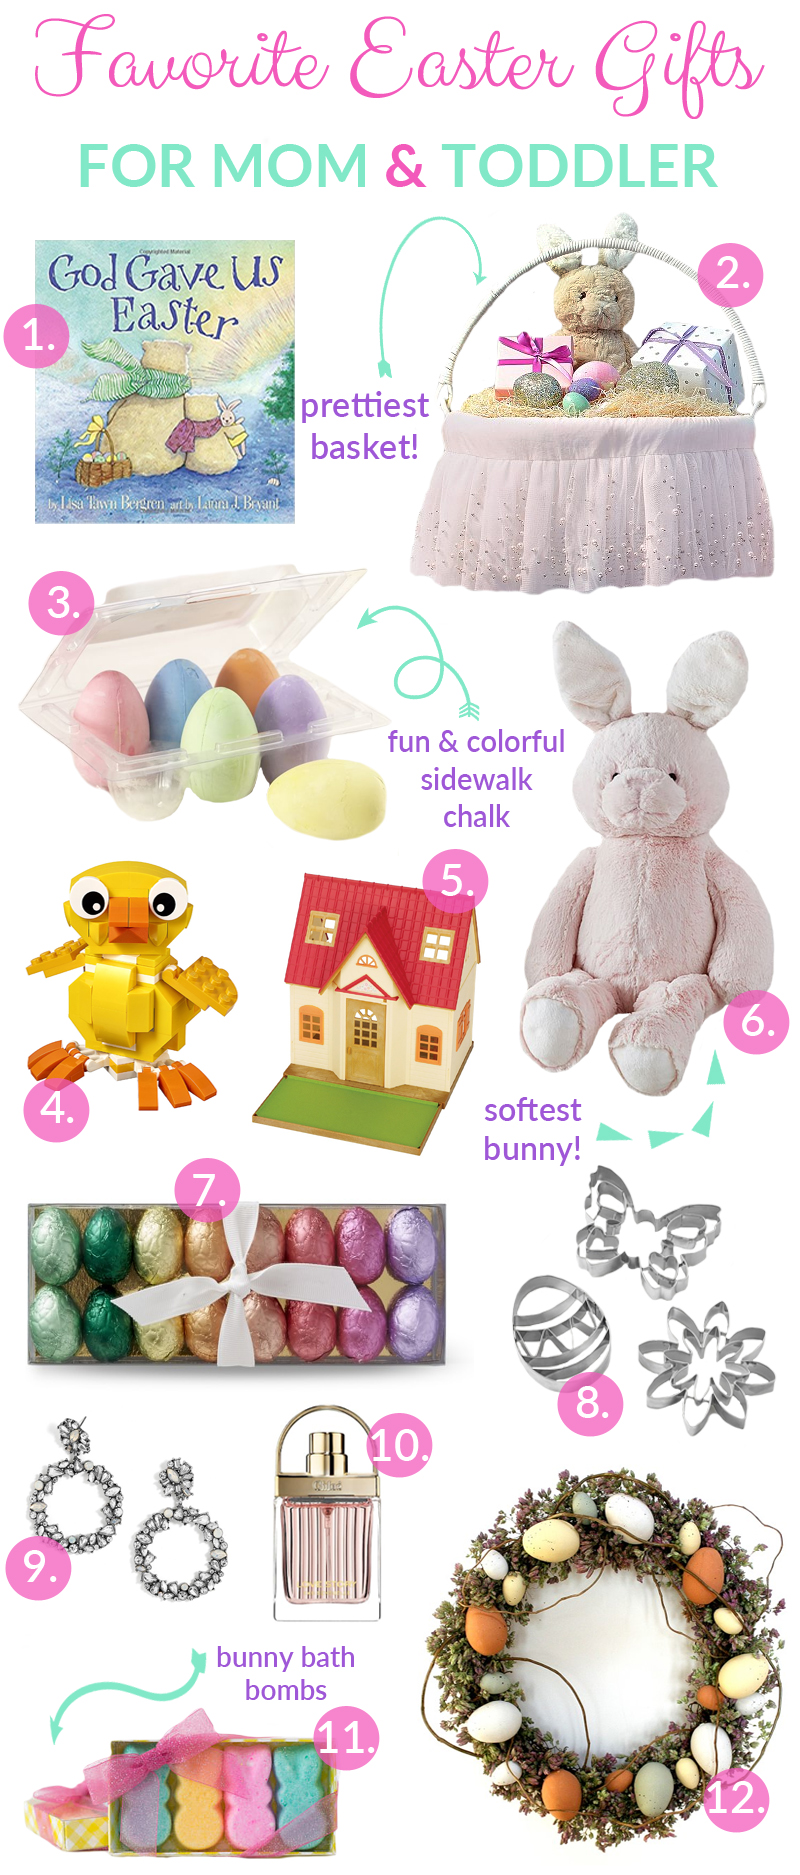 My Favorite Easter Gifts for Toddlers (& Mom!)